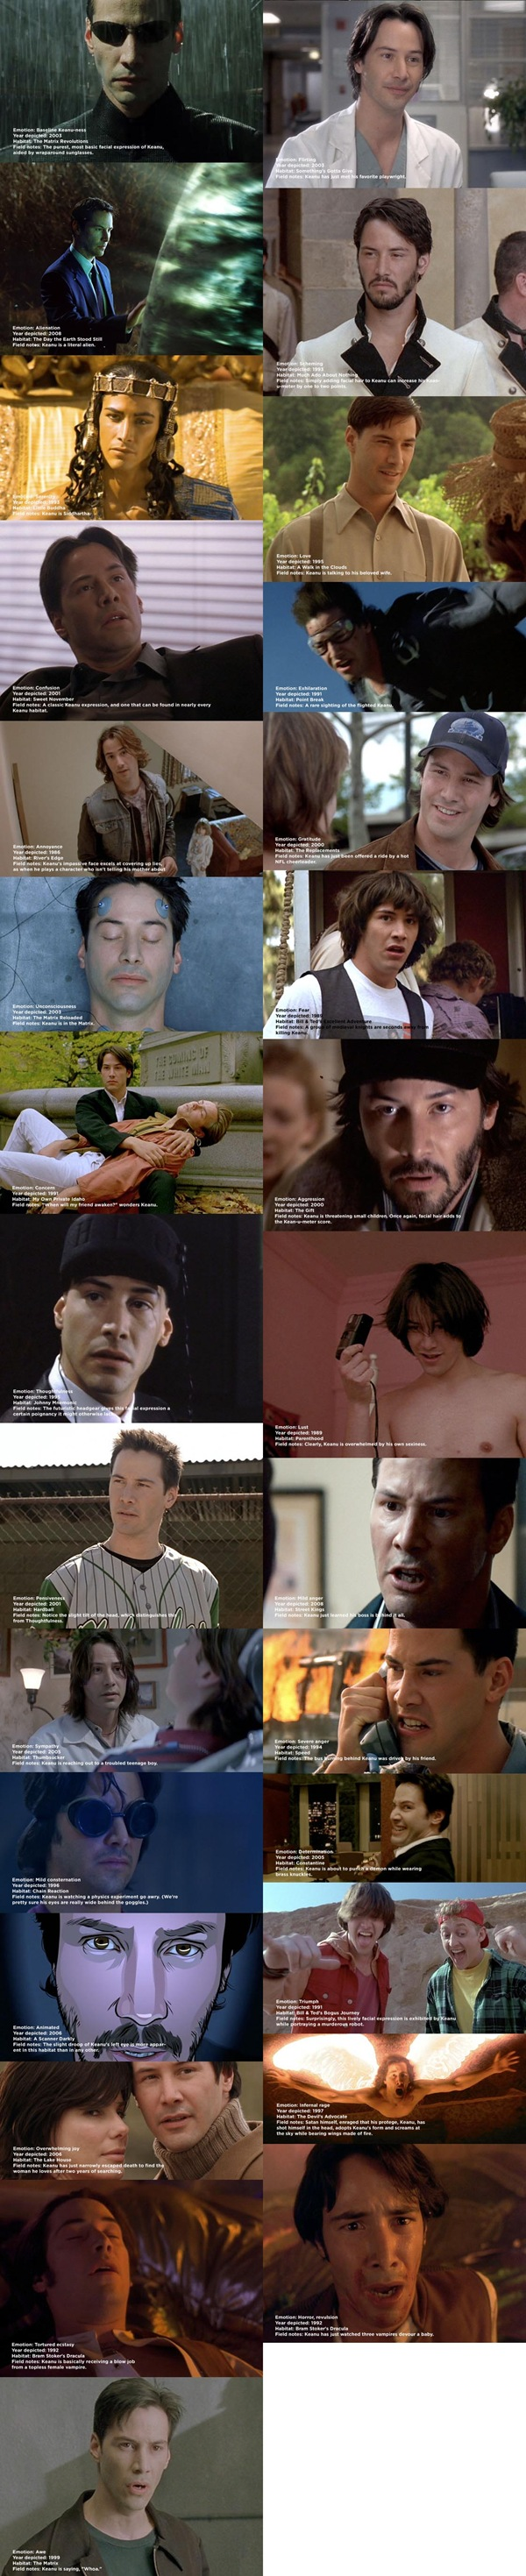 A montage of stills from many Keanu Reeves movies, showing his 2.5 facial expressions.